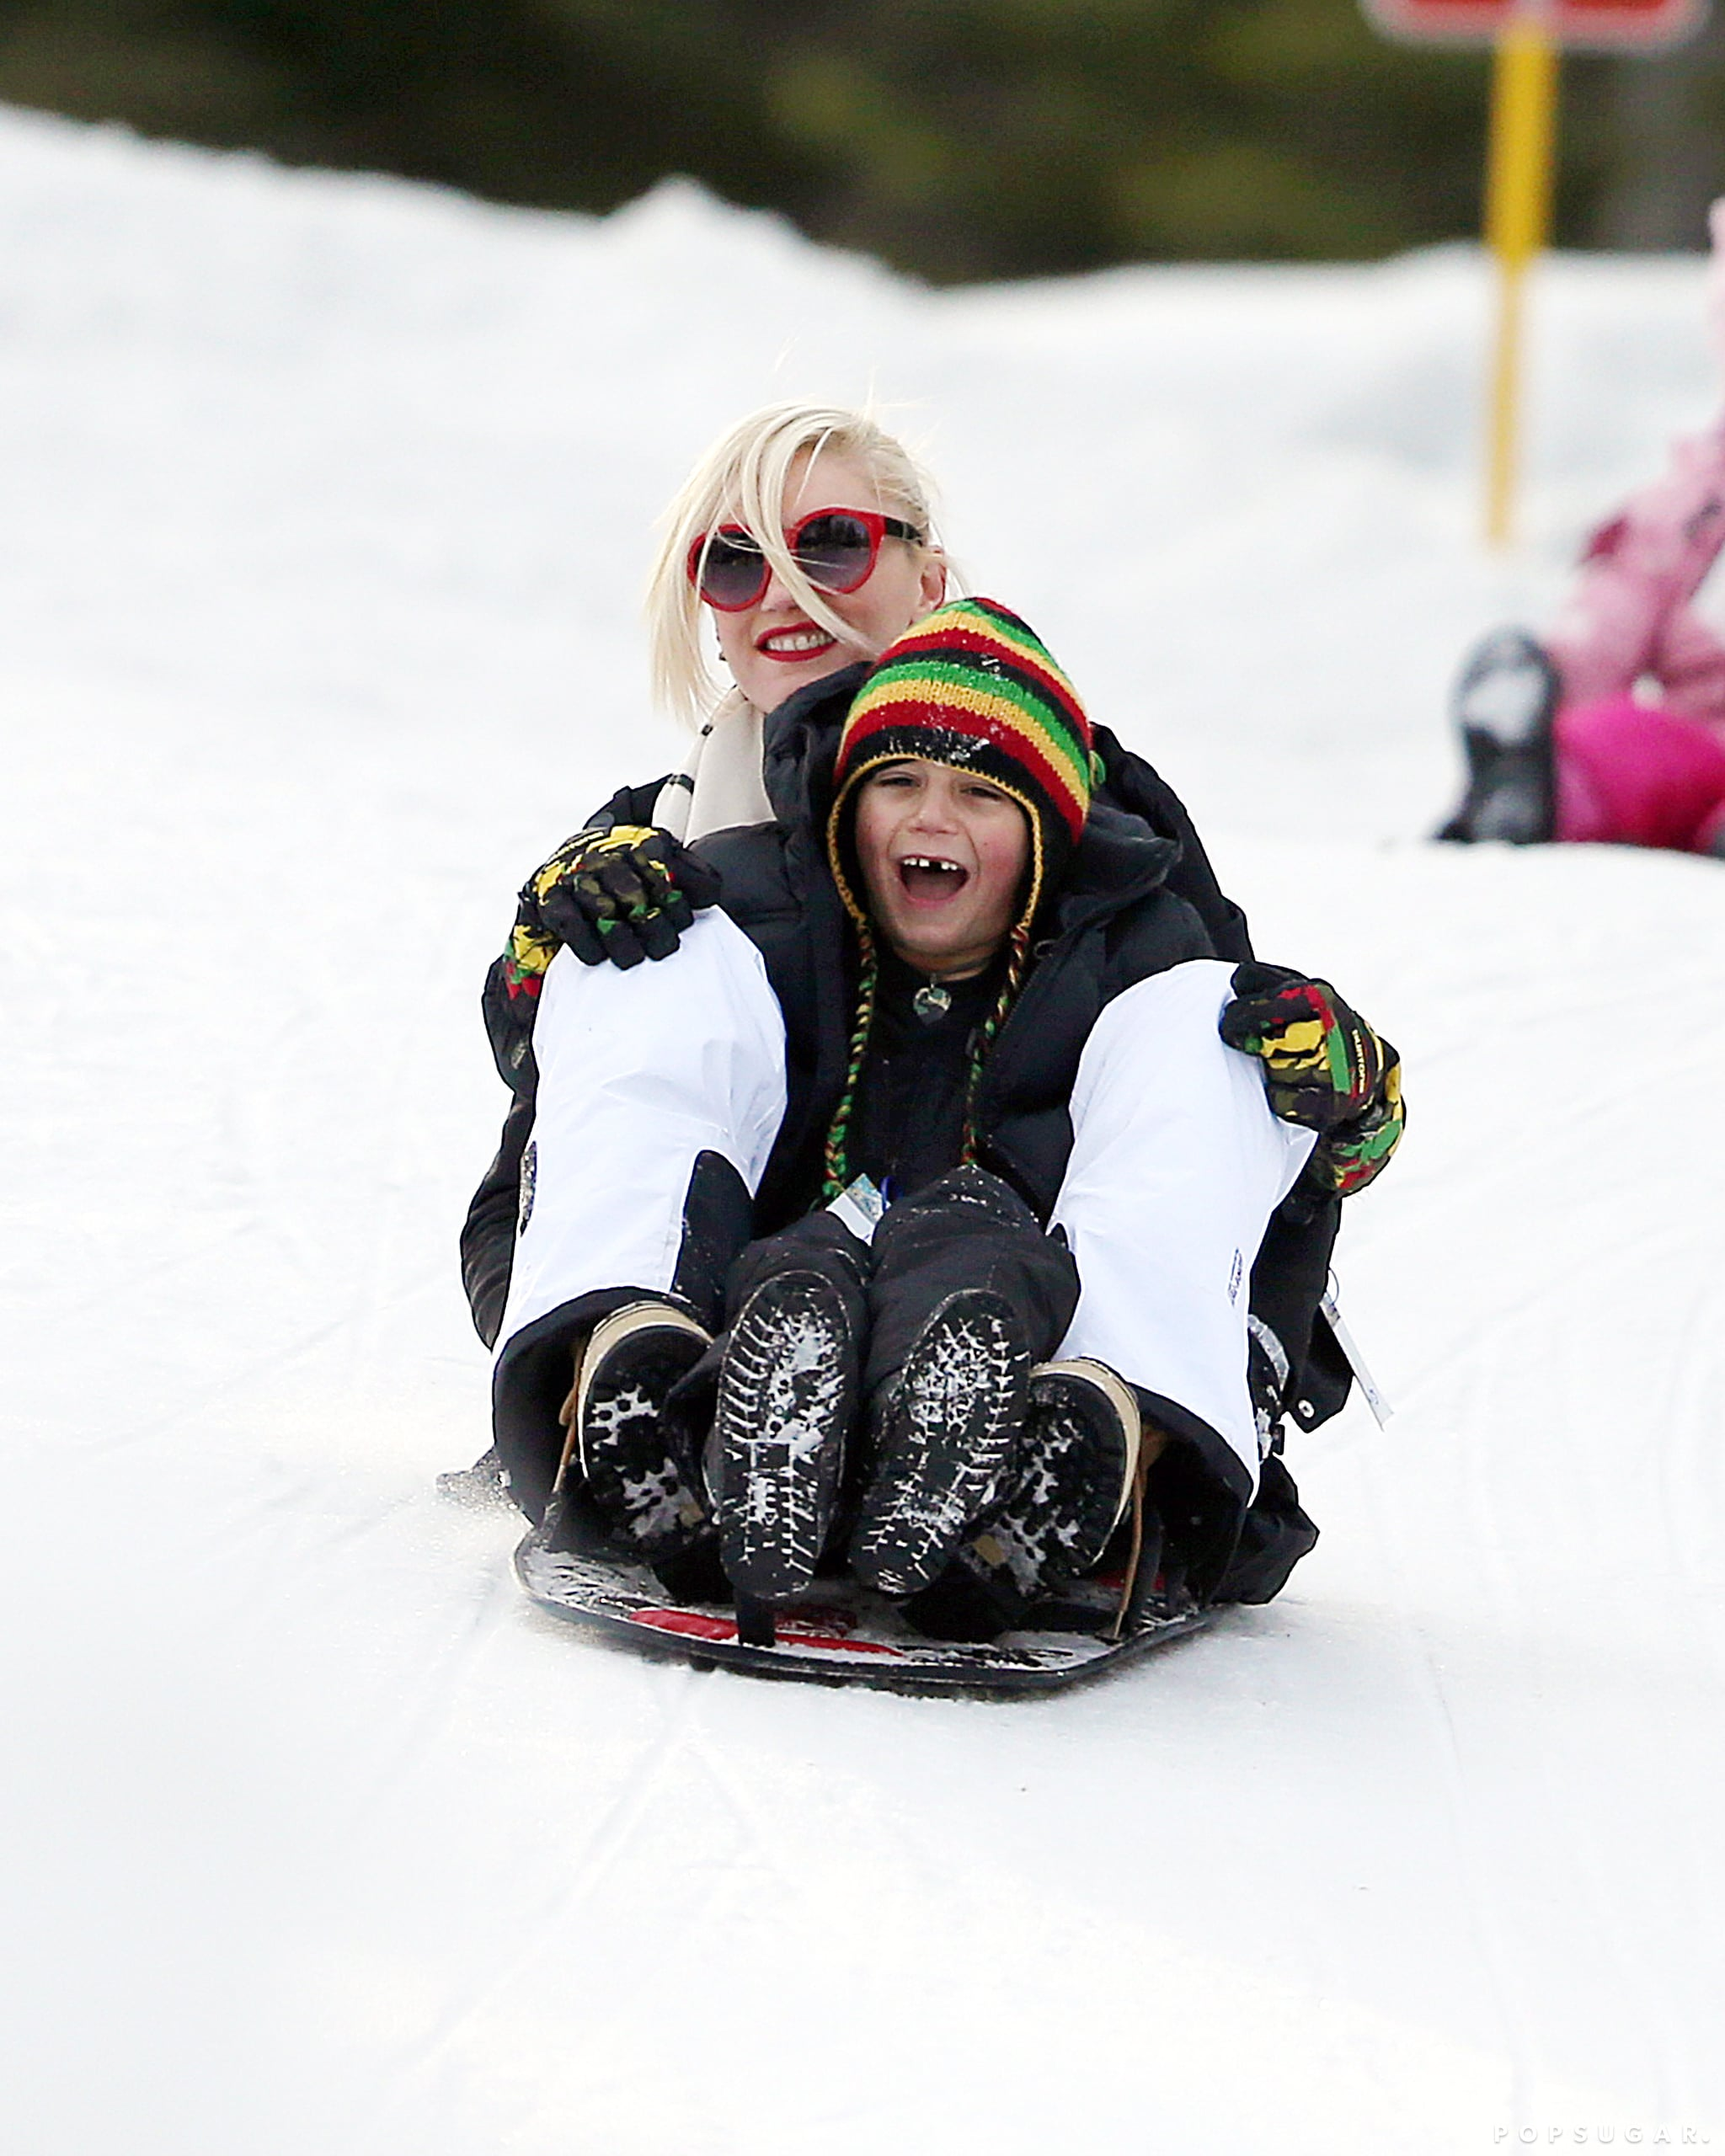 Gwen Stefani and her son Kingston went sledding together.